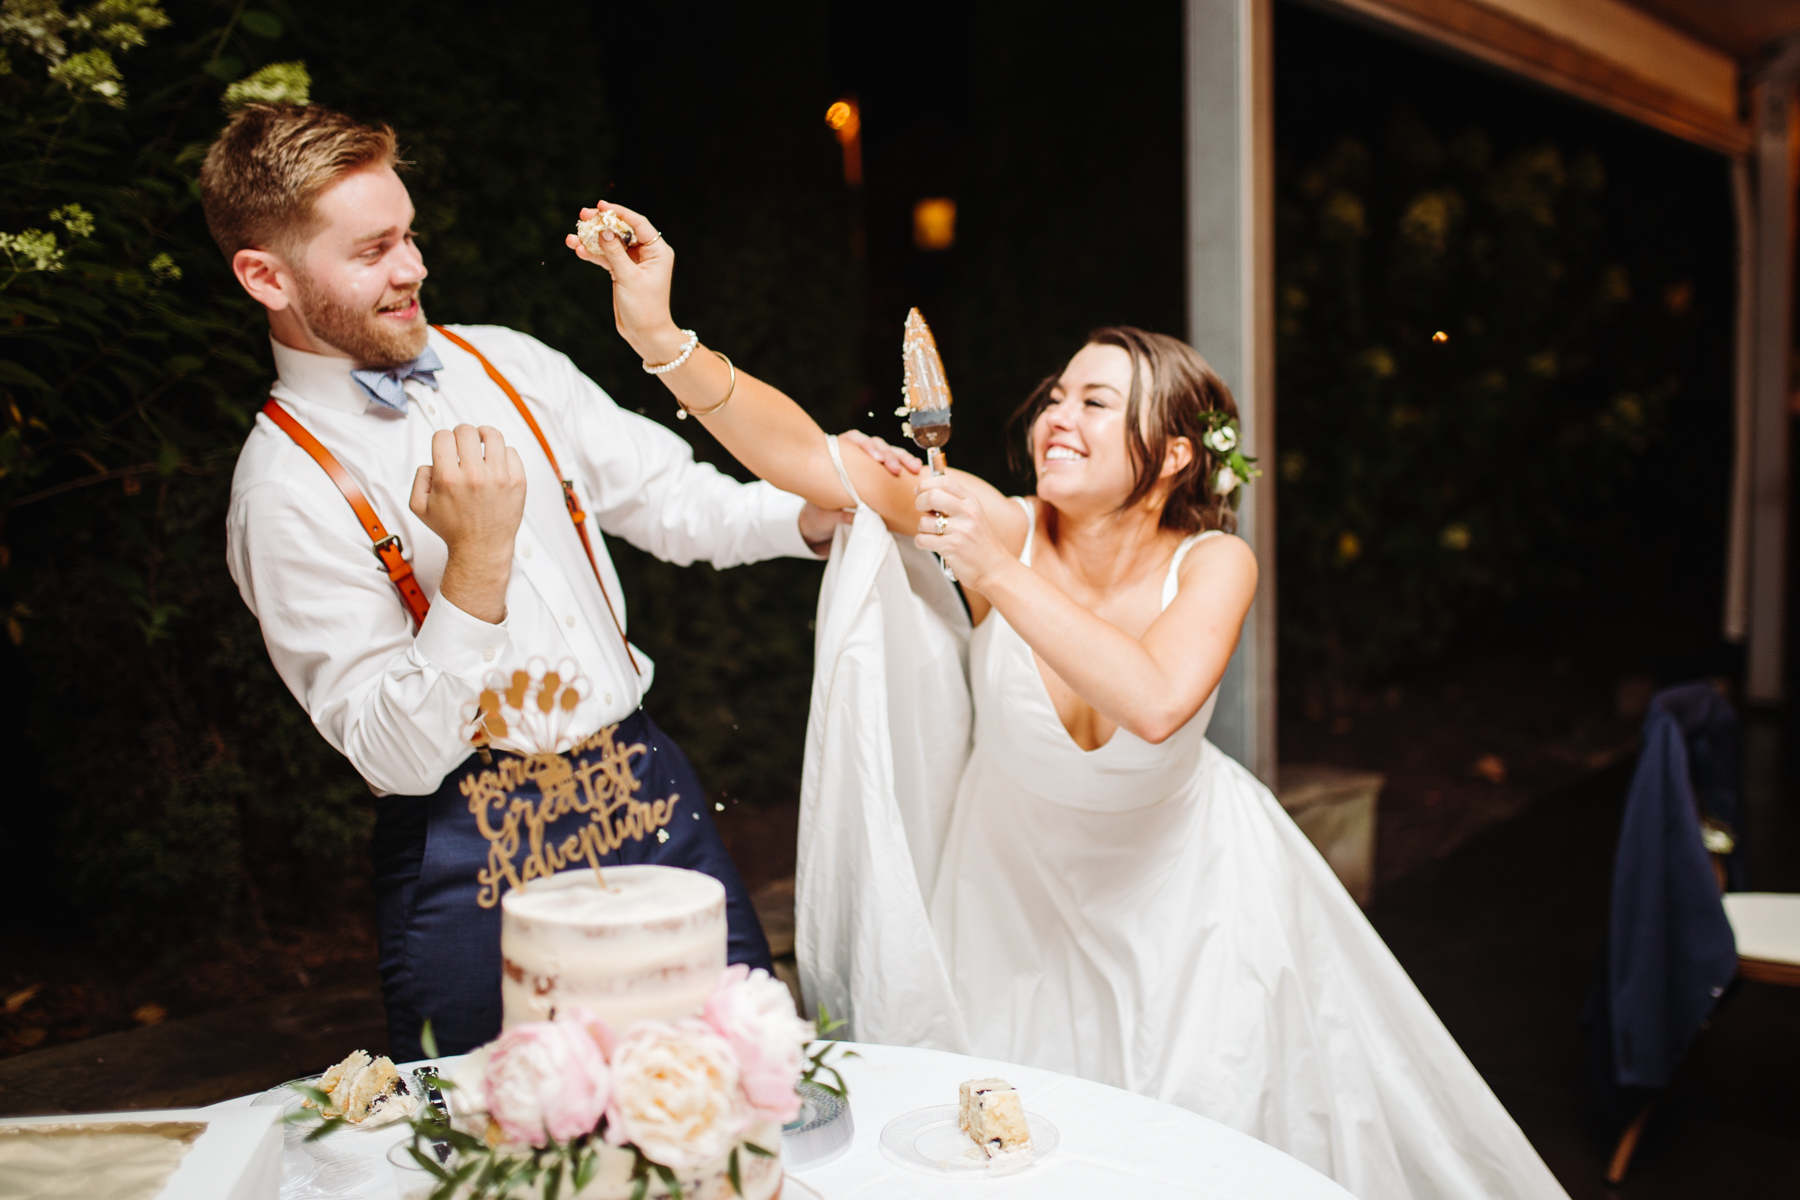 bride and groom smashing cake on each other during a reception of a Sunny summer wedding at Dara's Garden in Knoxville, Tennessee